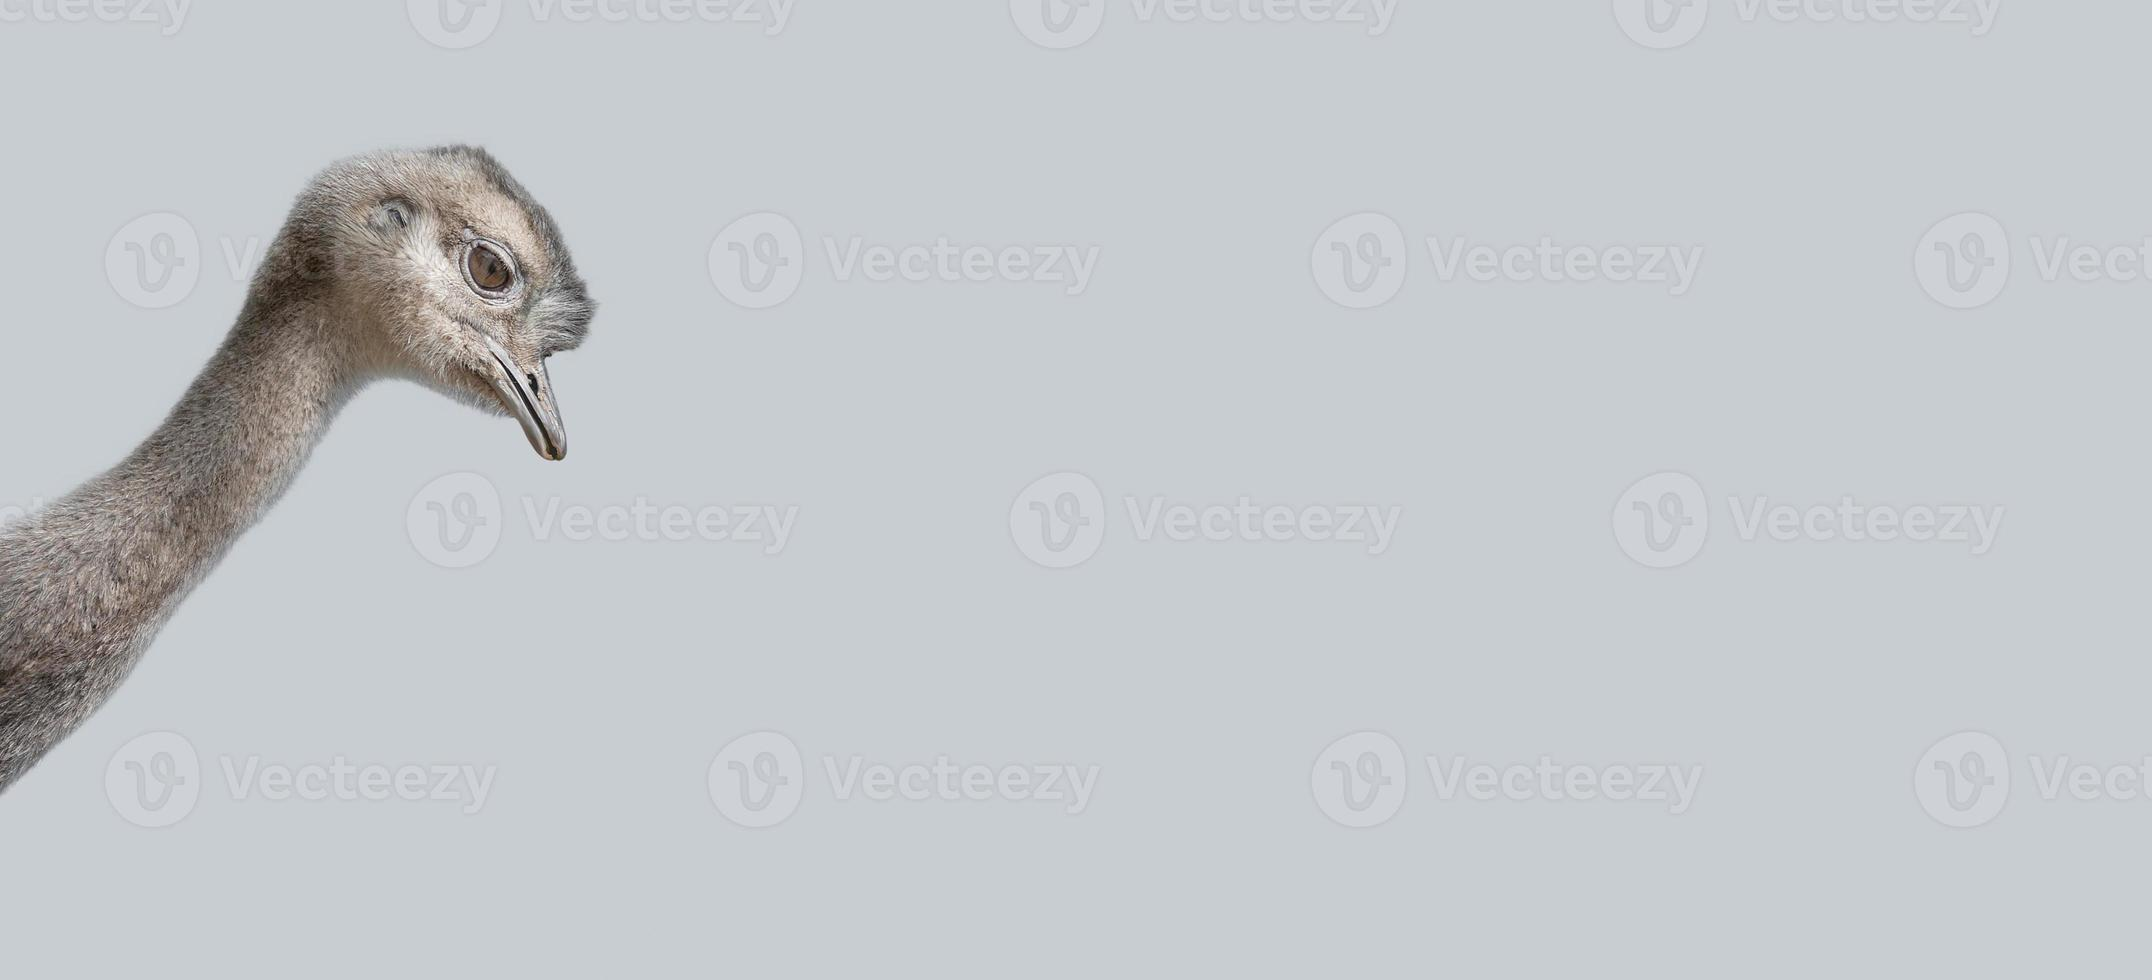 Banner with a cute young ostrich chick at solid grey background with copy space. Concept of wonder and curiosity. photo